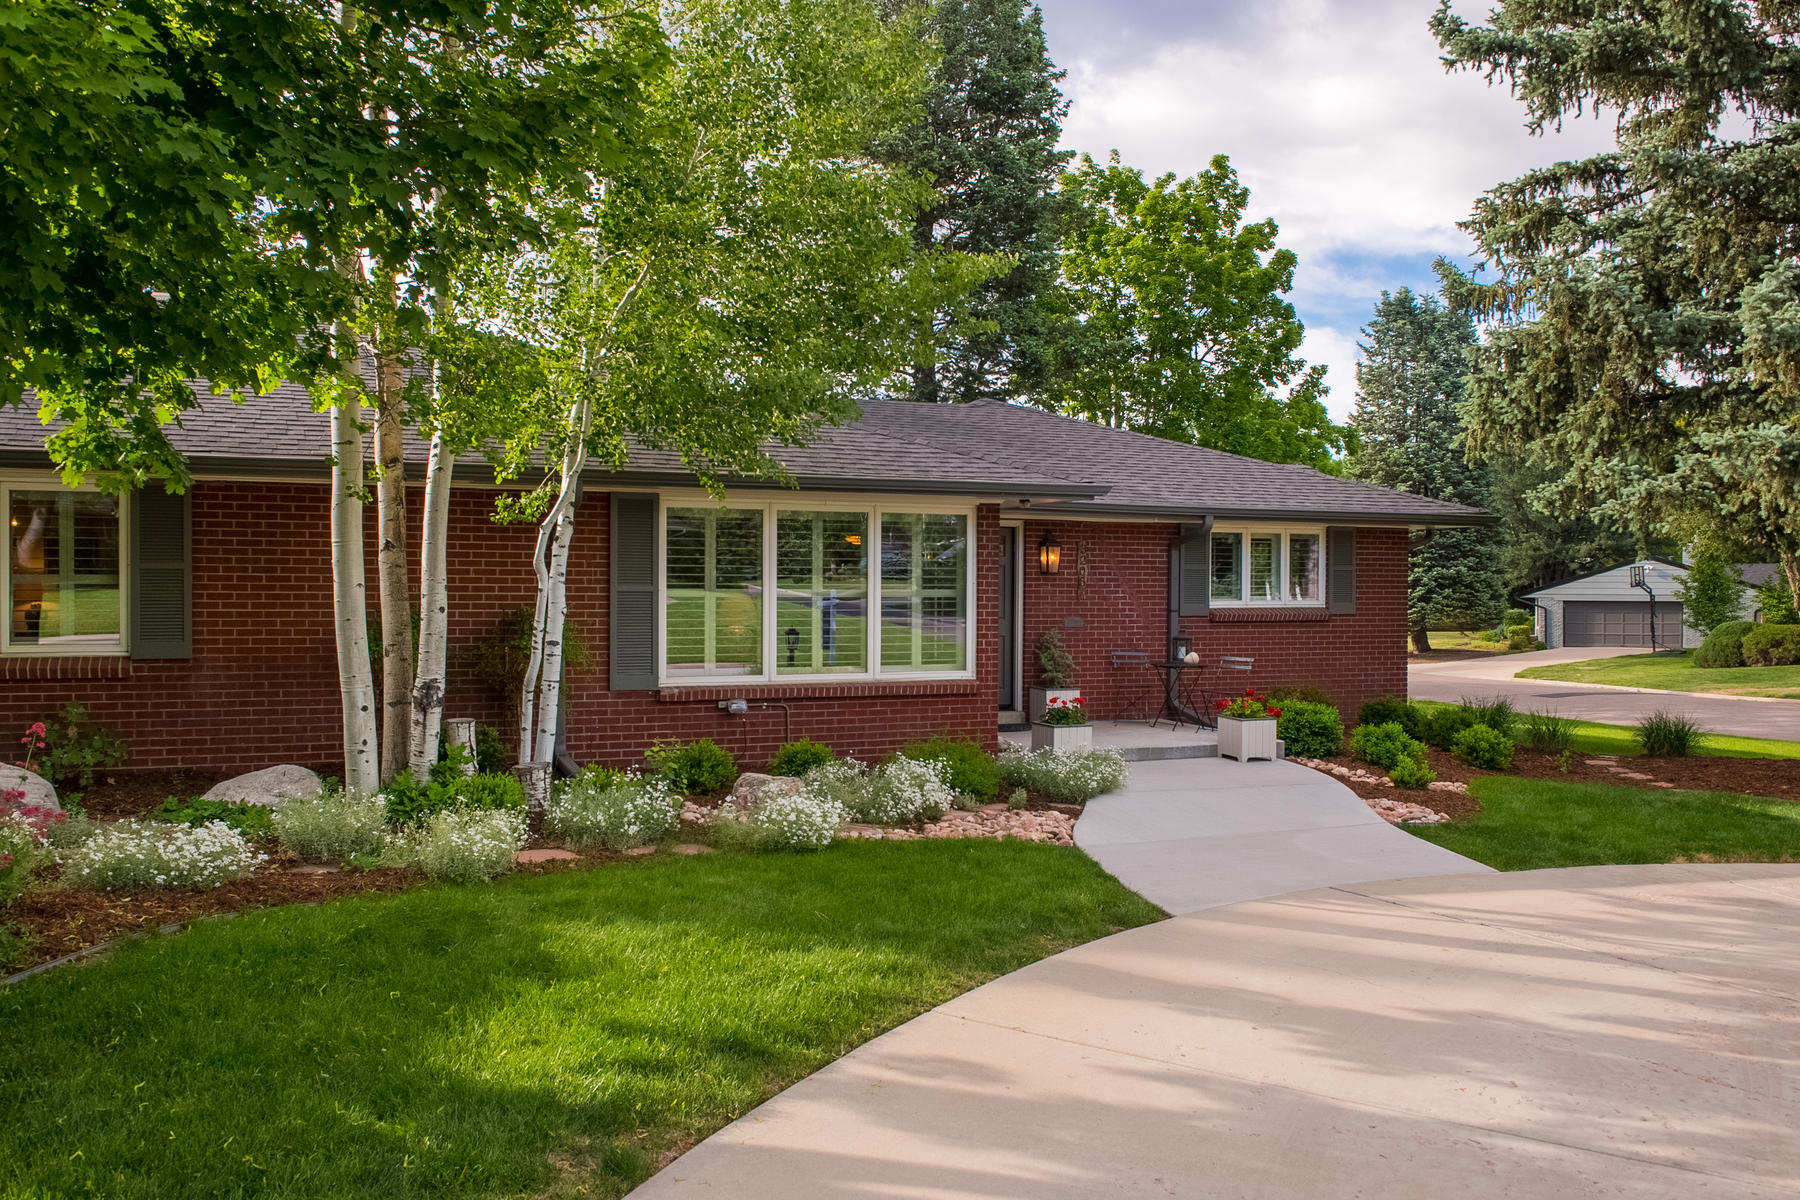 Single Family Home for Active at Live in the Highly Sought After Cherry Hills Heights Neighborhood 3205 South Gregg Court Denver, Colorado 80210 United States